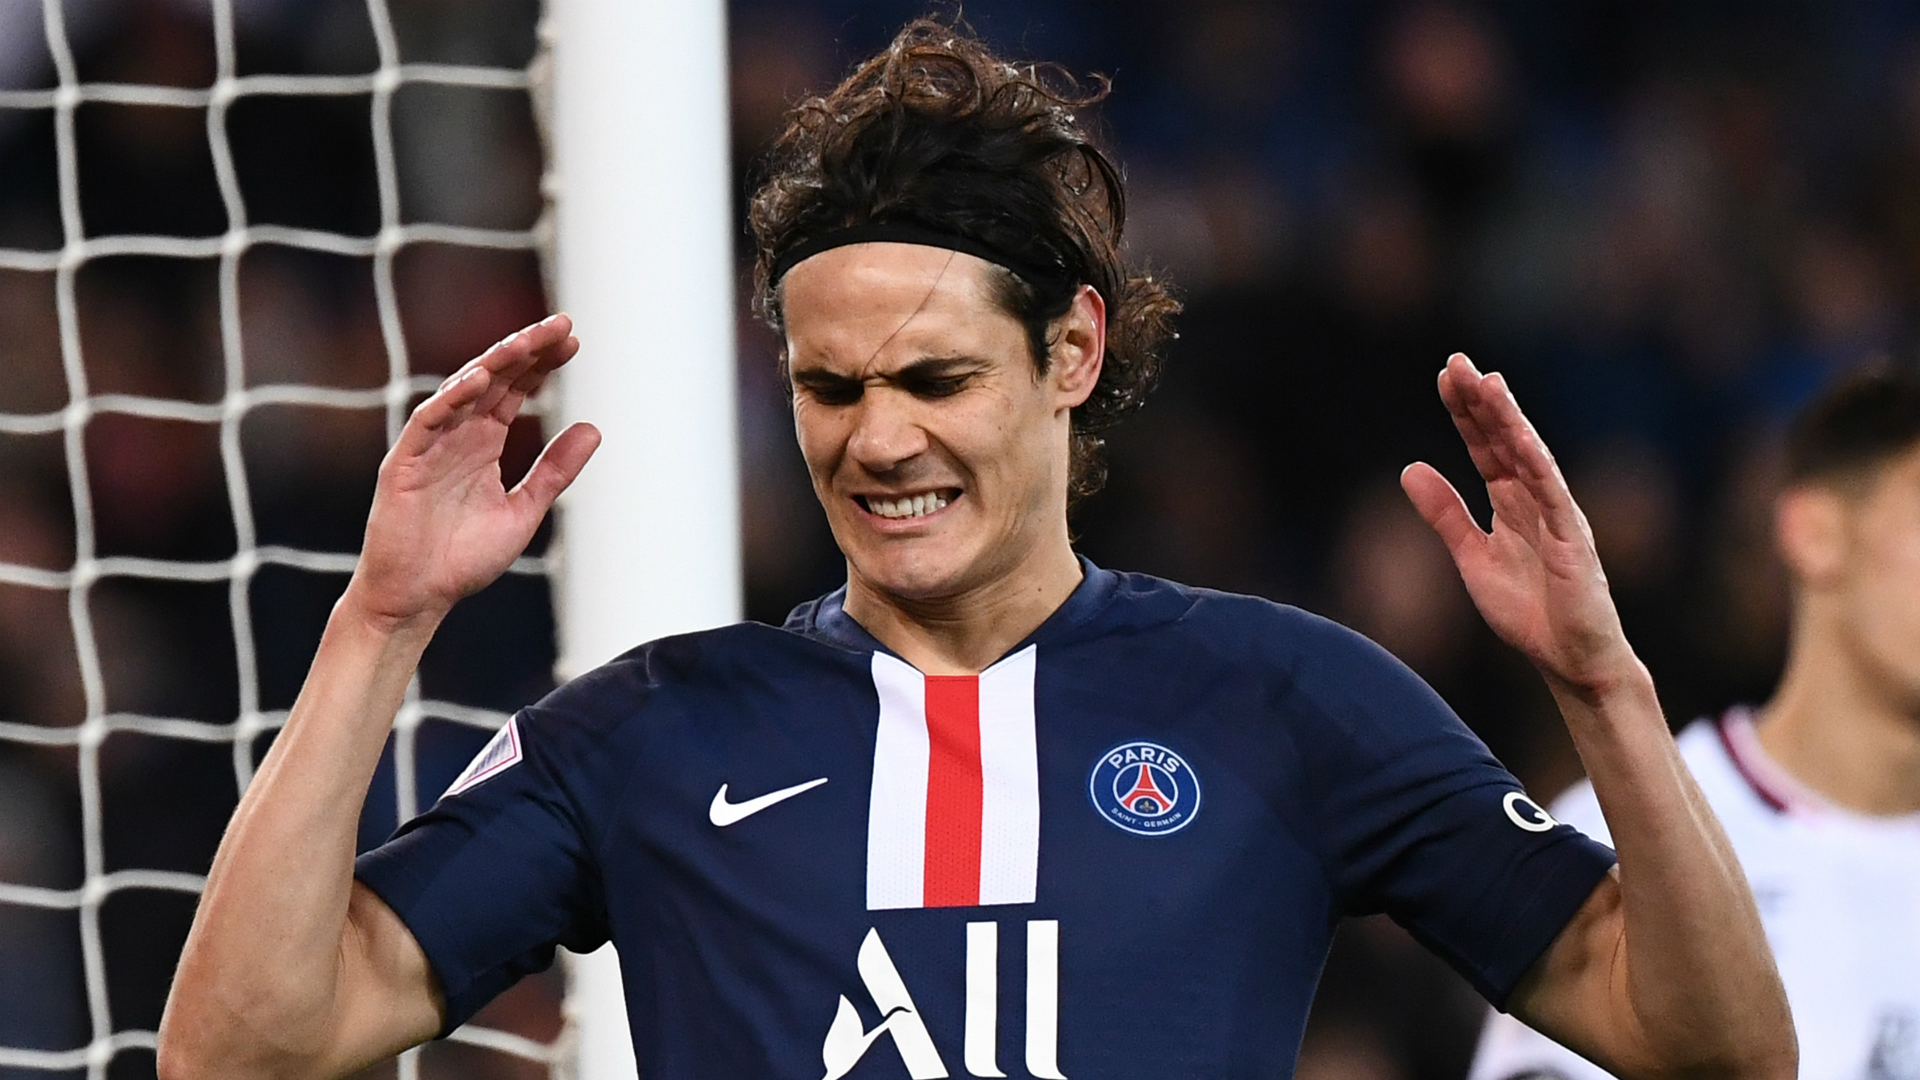 Cavani to miss Newcastle match due to COVID-19 guidelines